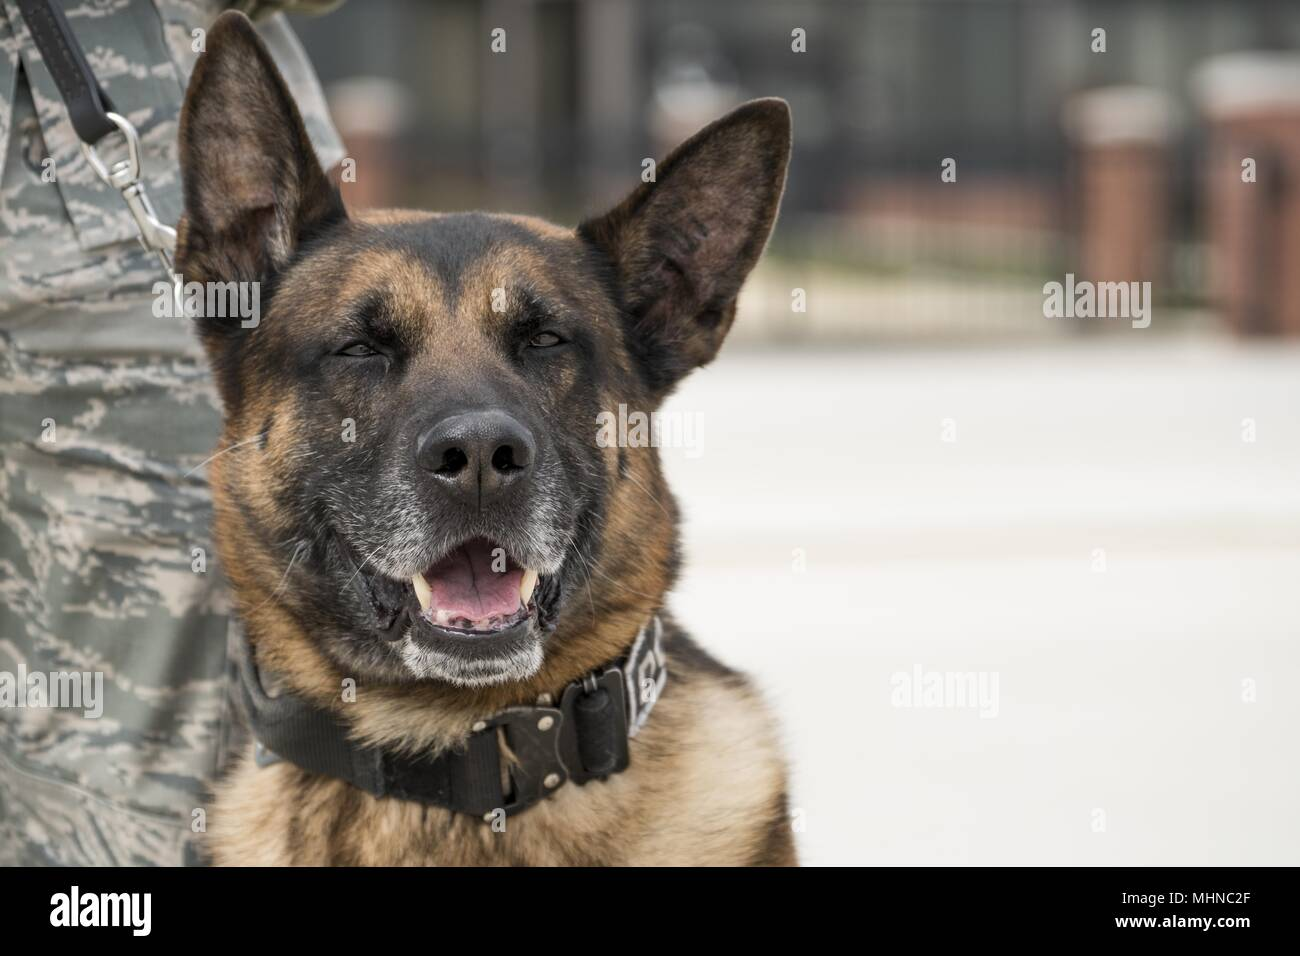 Gip, a military working dog assigned to the 11th Security Support Squadron, stands by his handler, Staff Sgt. Joshua Lawson, as they await the arrival of the President and First Lady of the United States at Joint Base Andrews, Md. March 19, 2018, March 19, 2018. MWDs work as force multipliers when providing security, using their senses to acknowledge handlers of both visible and invisible threats. (U.S. Air Force photo/Tech. Sgt. Robert Cloys). () - Stock Image